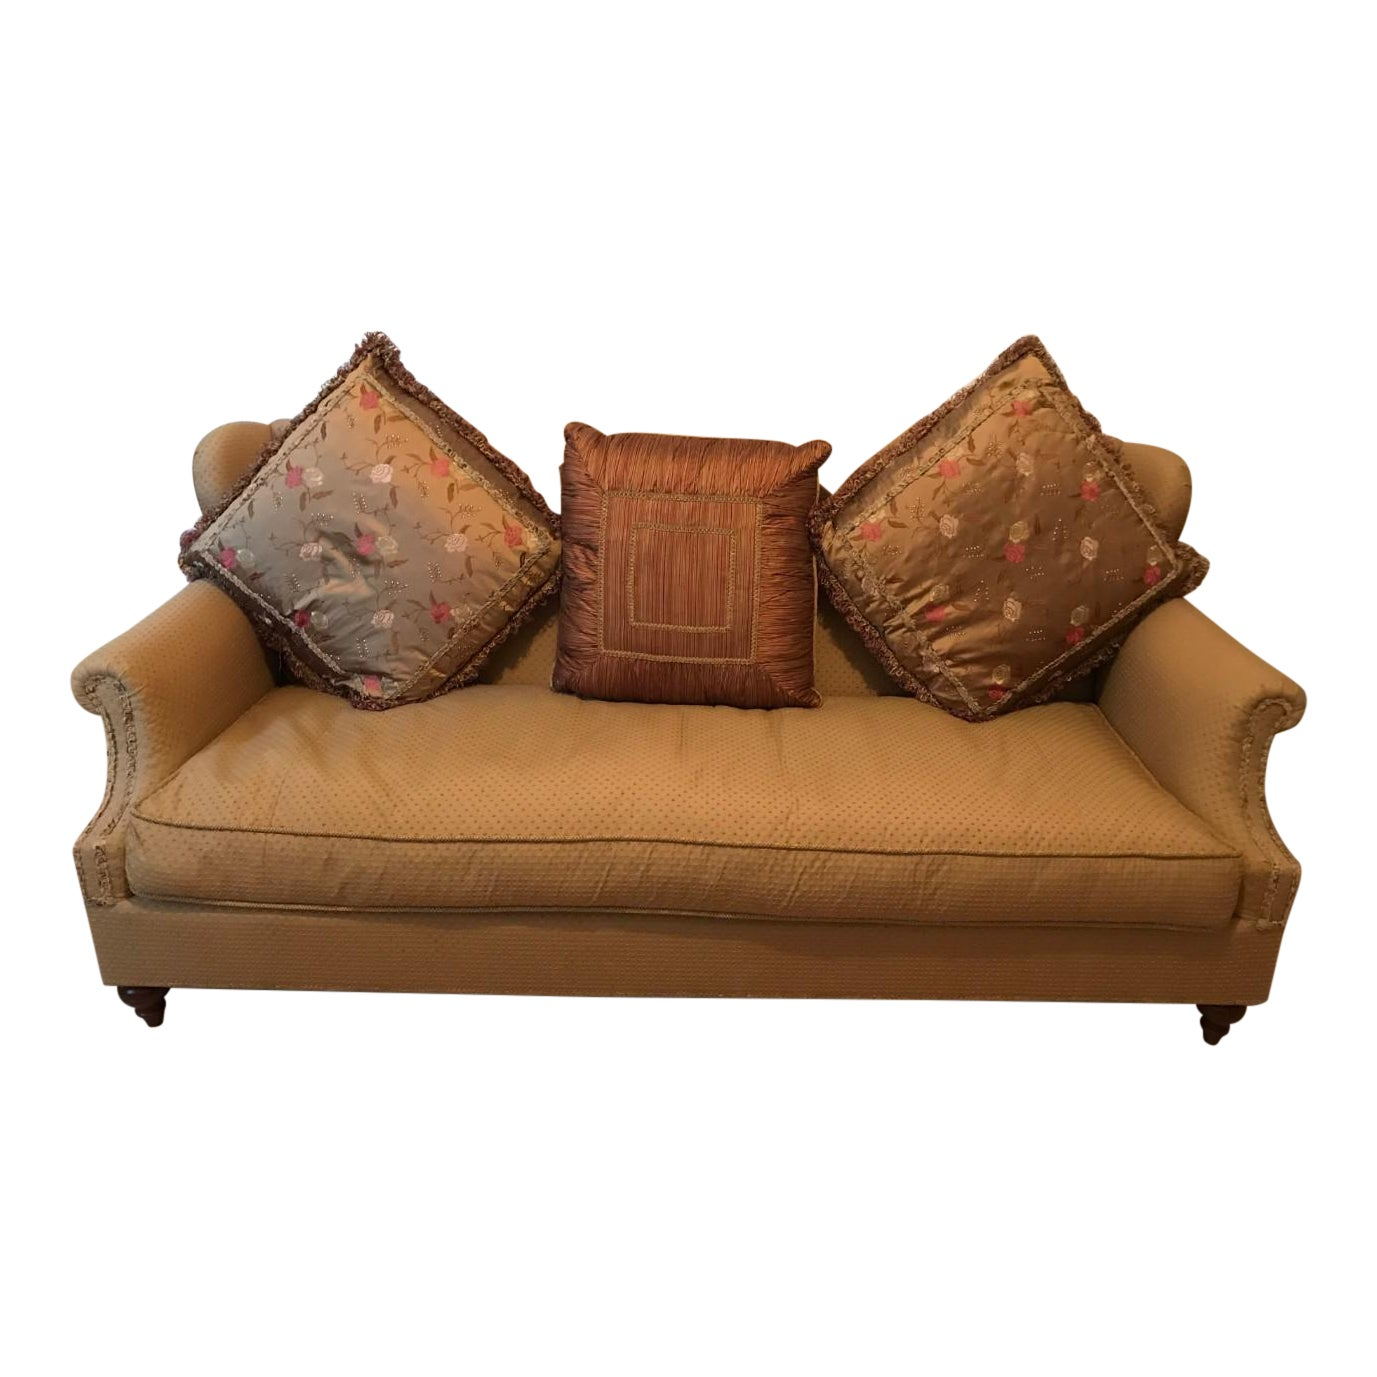 Astounding Domain Victorian Style Sofa With Pillows Chairish Caraccident5 Cool Chair Designs And Ideas Caraccident5Info